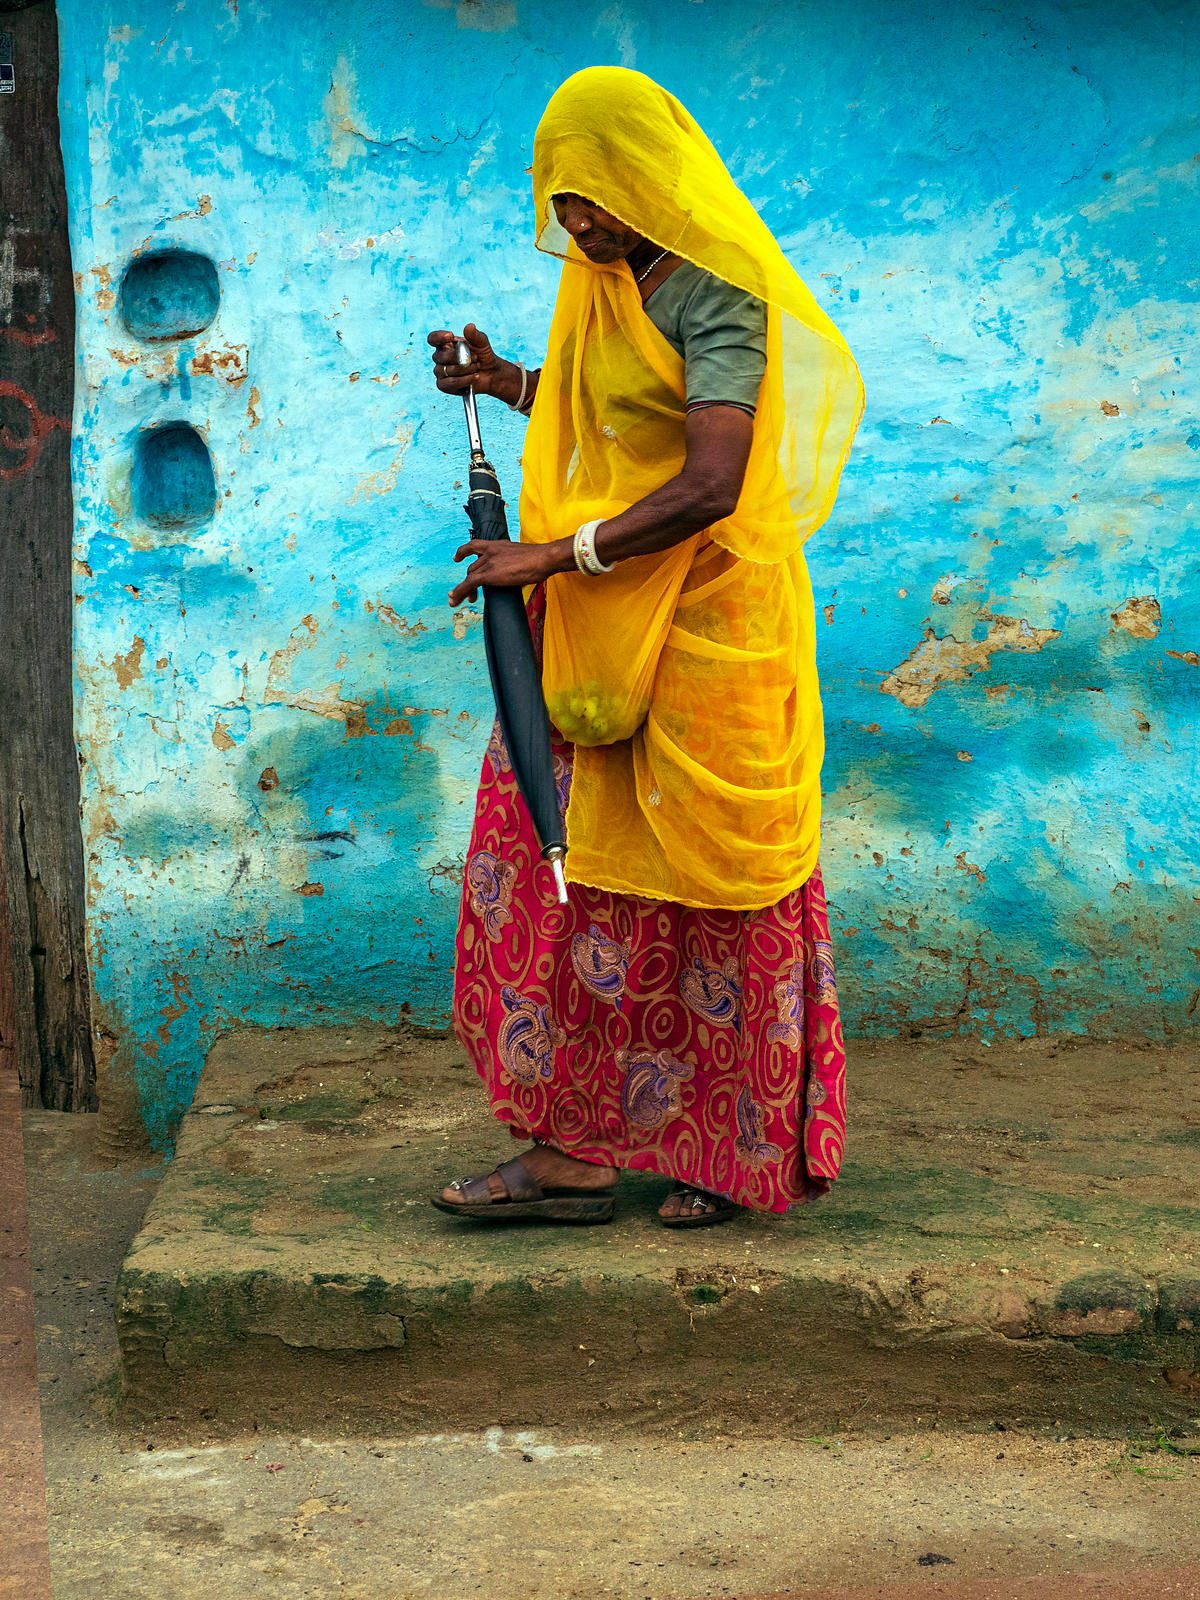 A rural woman gets ready to go out